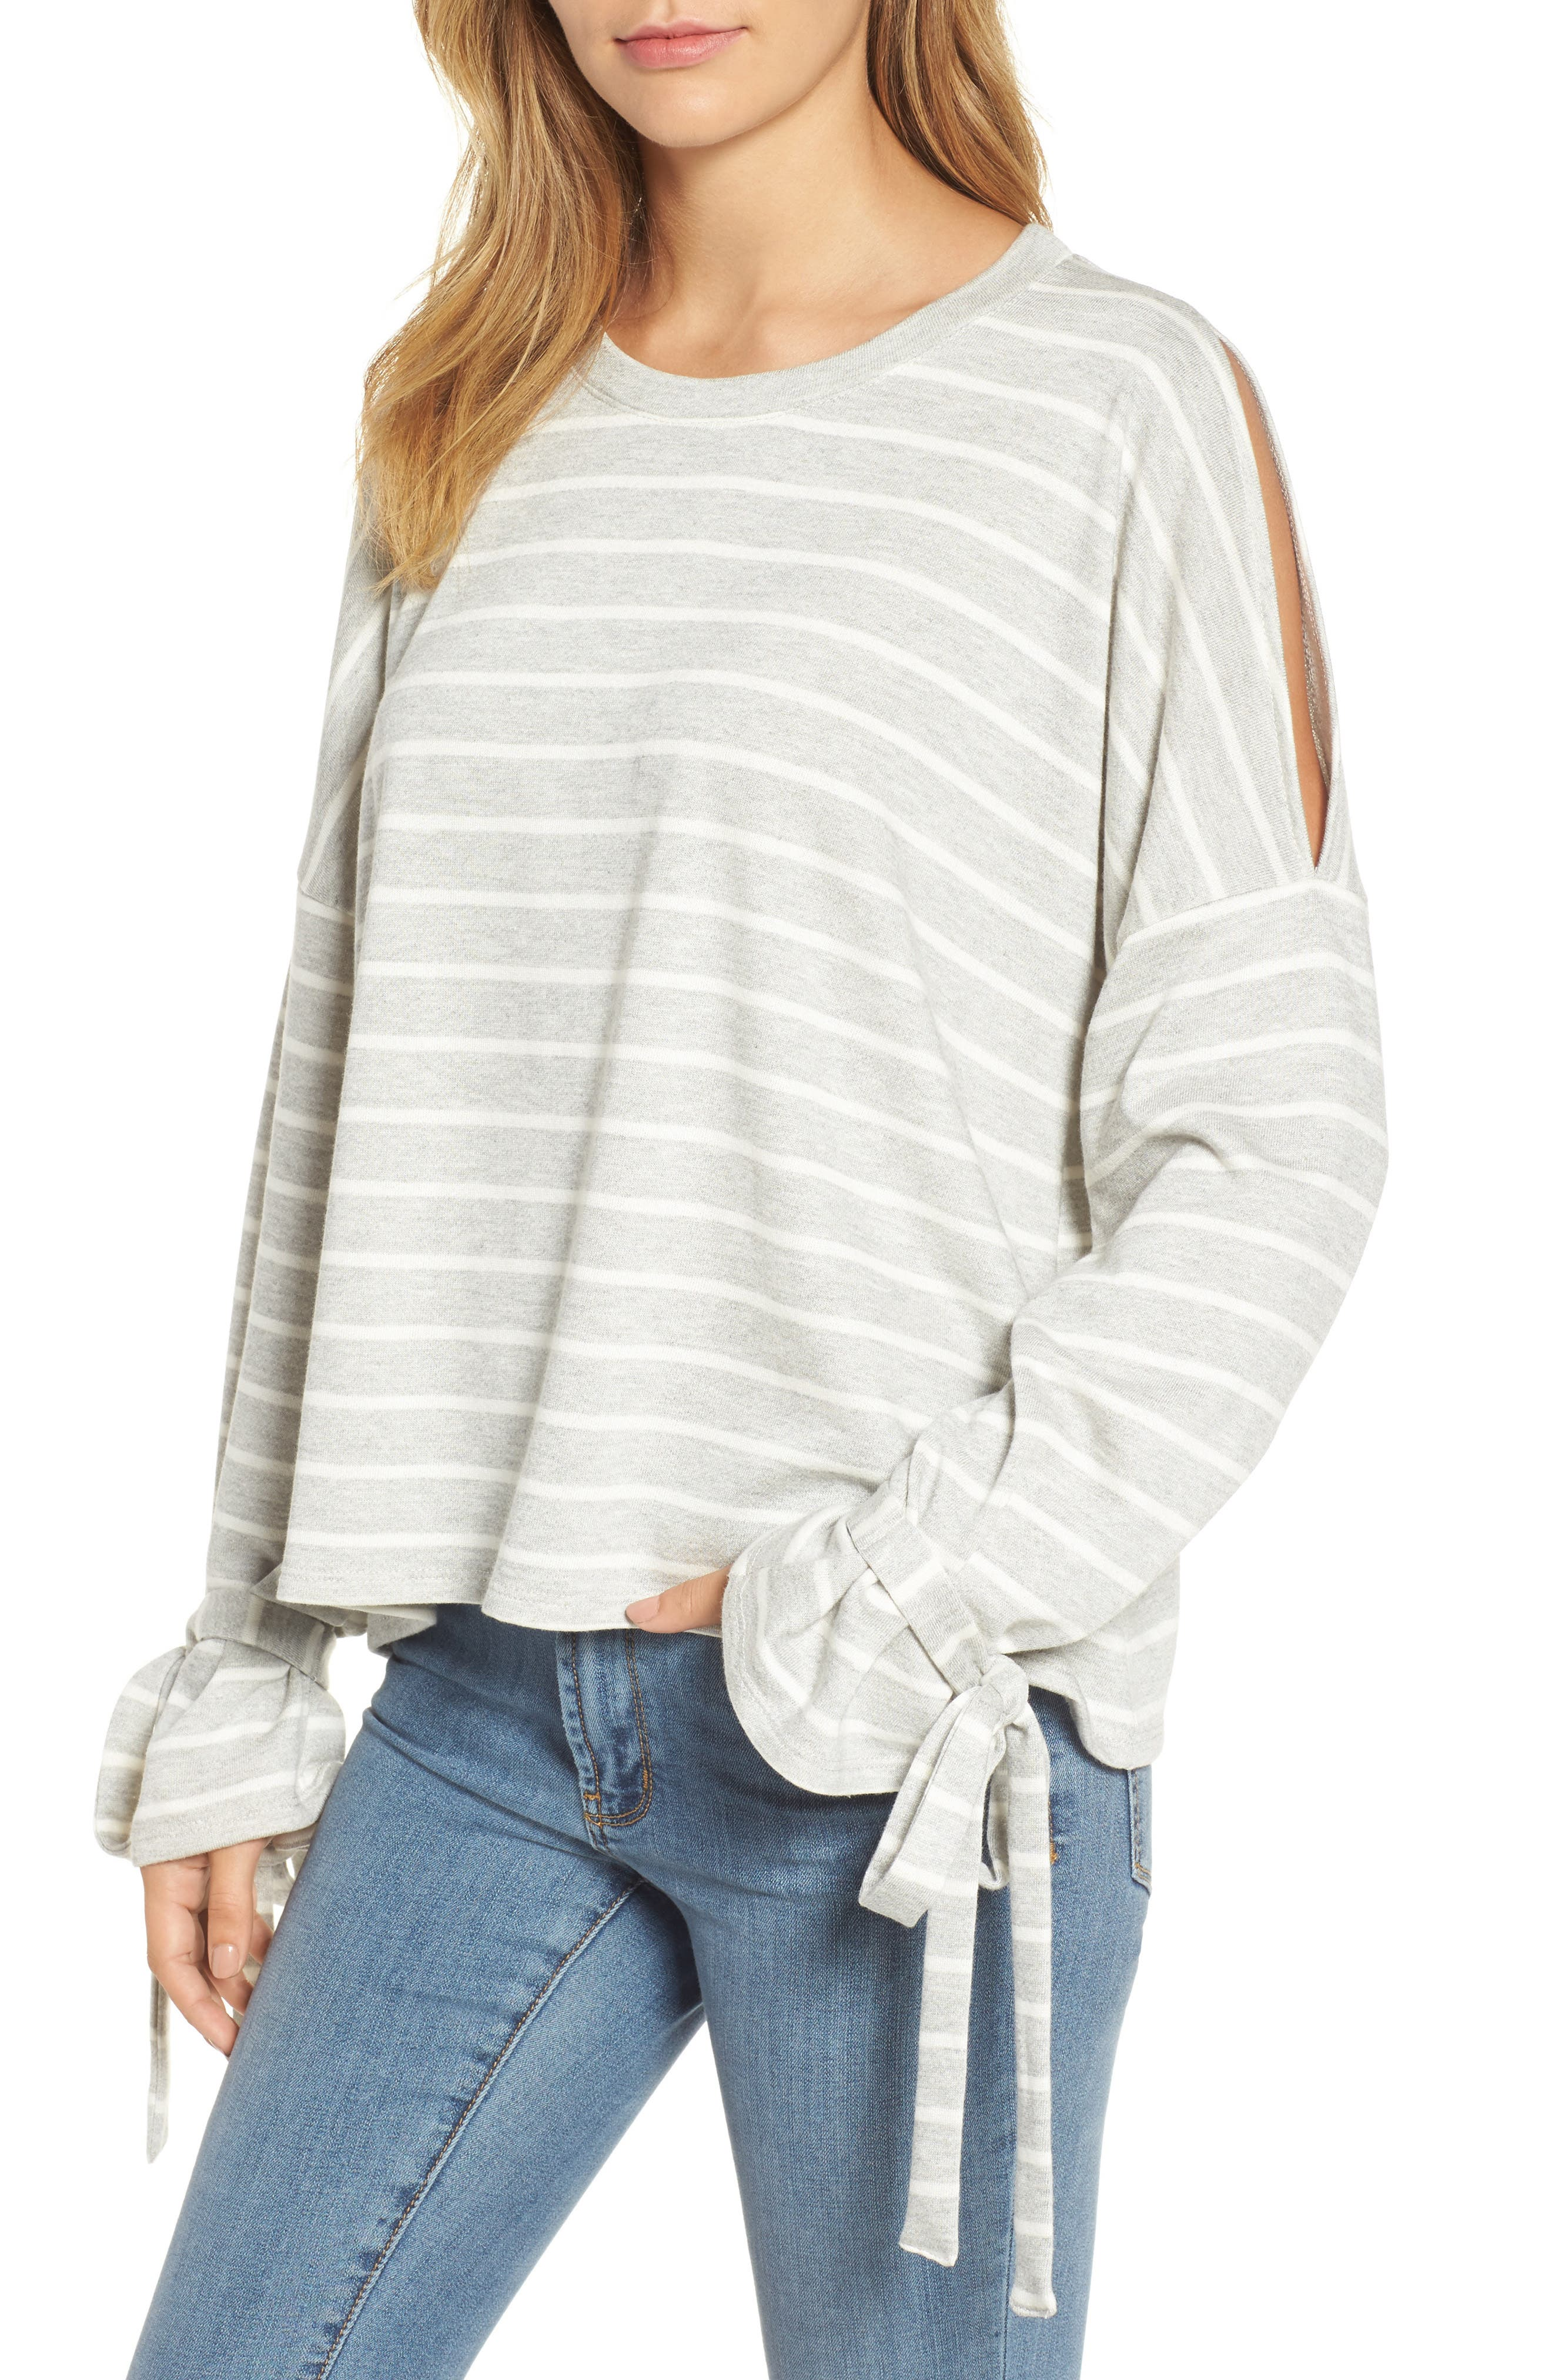 Calson<sup>®</sup> Cold Shoulder Tie Sleeve Tee,                             Main thumbnail 1, color,                             030